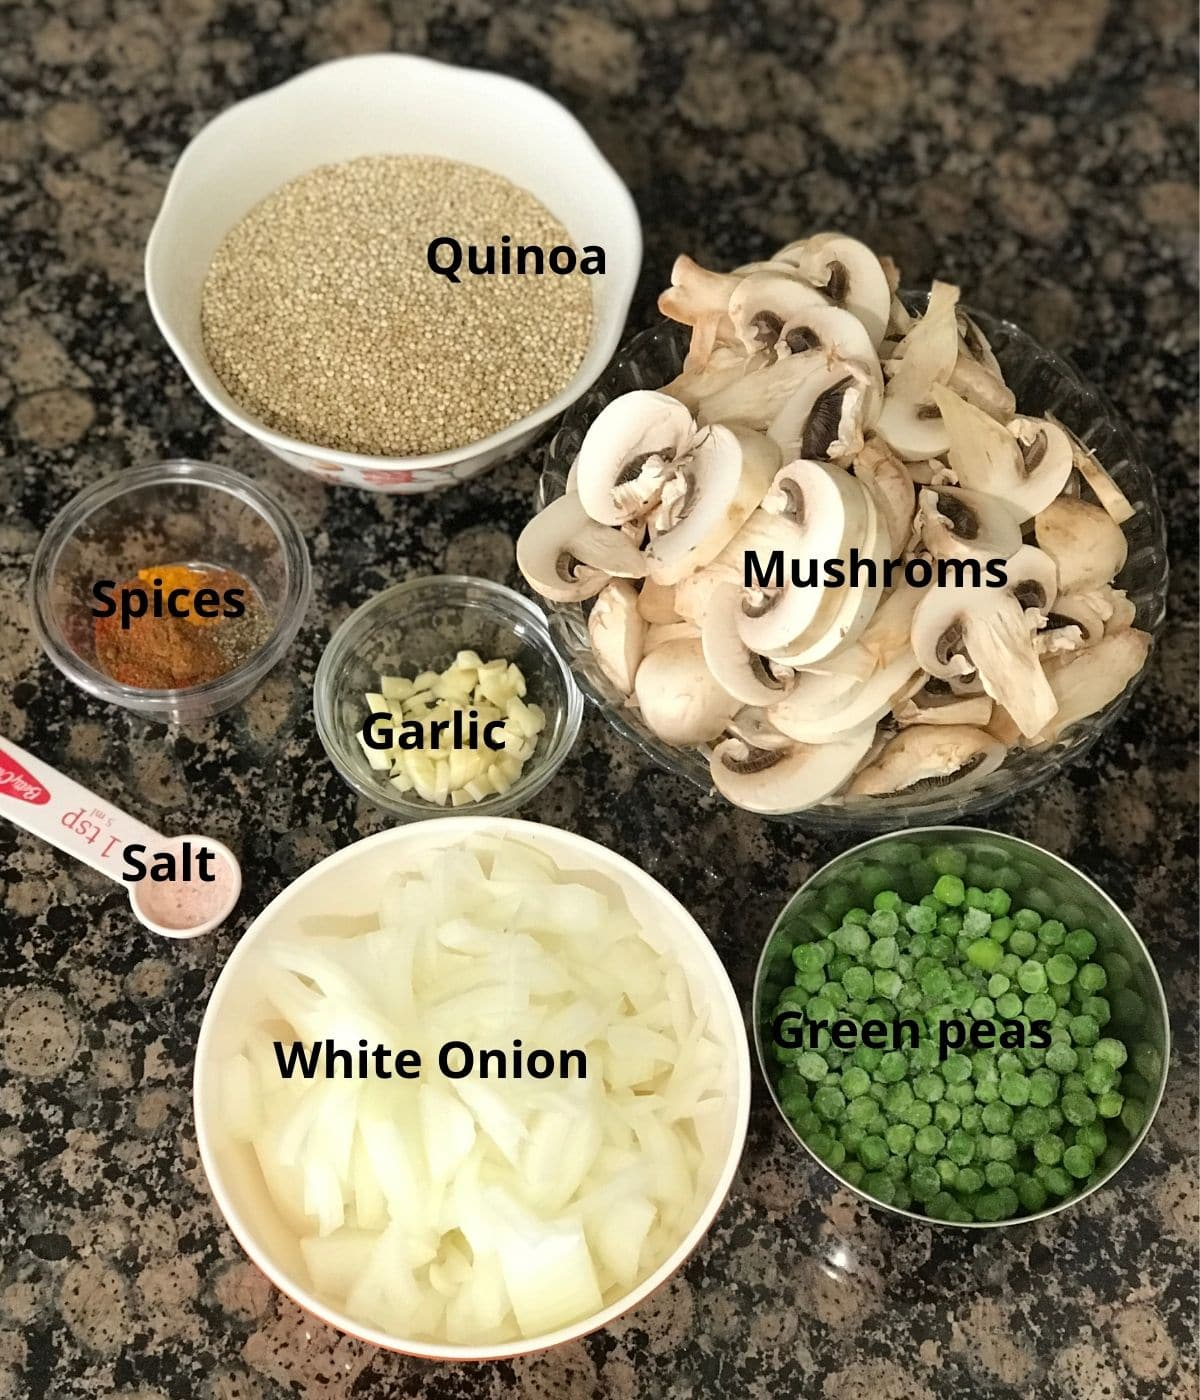 All the ingredients like onions, mushrooms, spices are placed on the counter tops